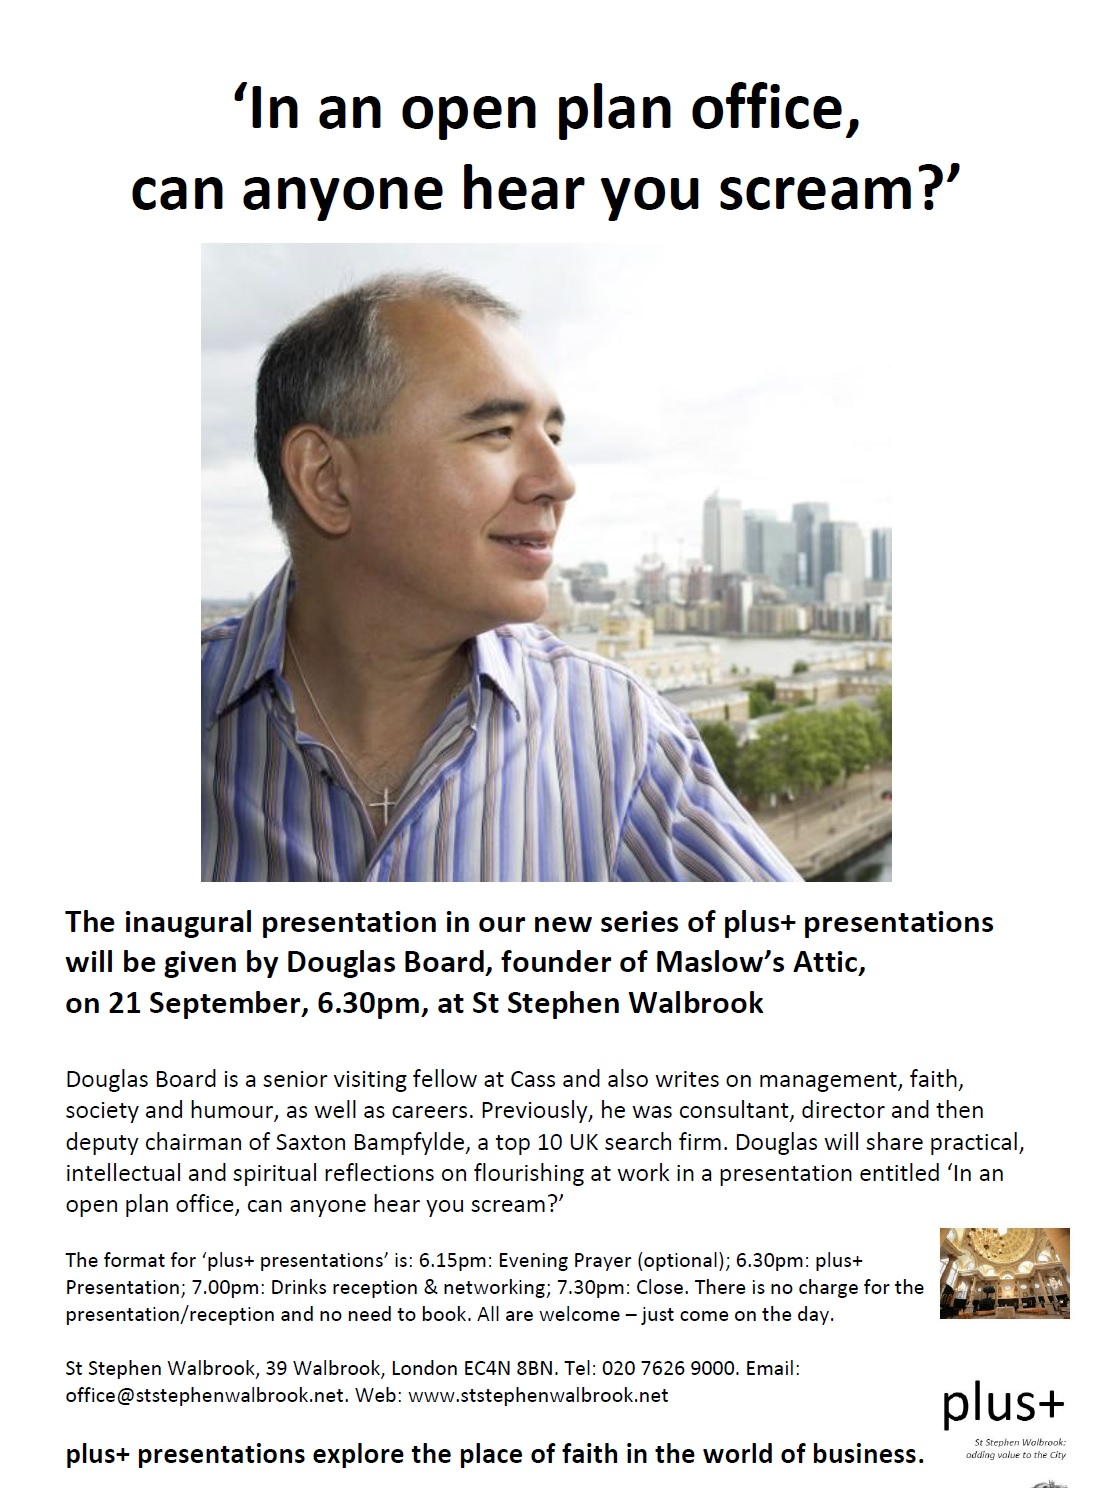 as part of further developing the st stephen walbrook has with the business community in the city of london we plan to begin a new series of